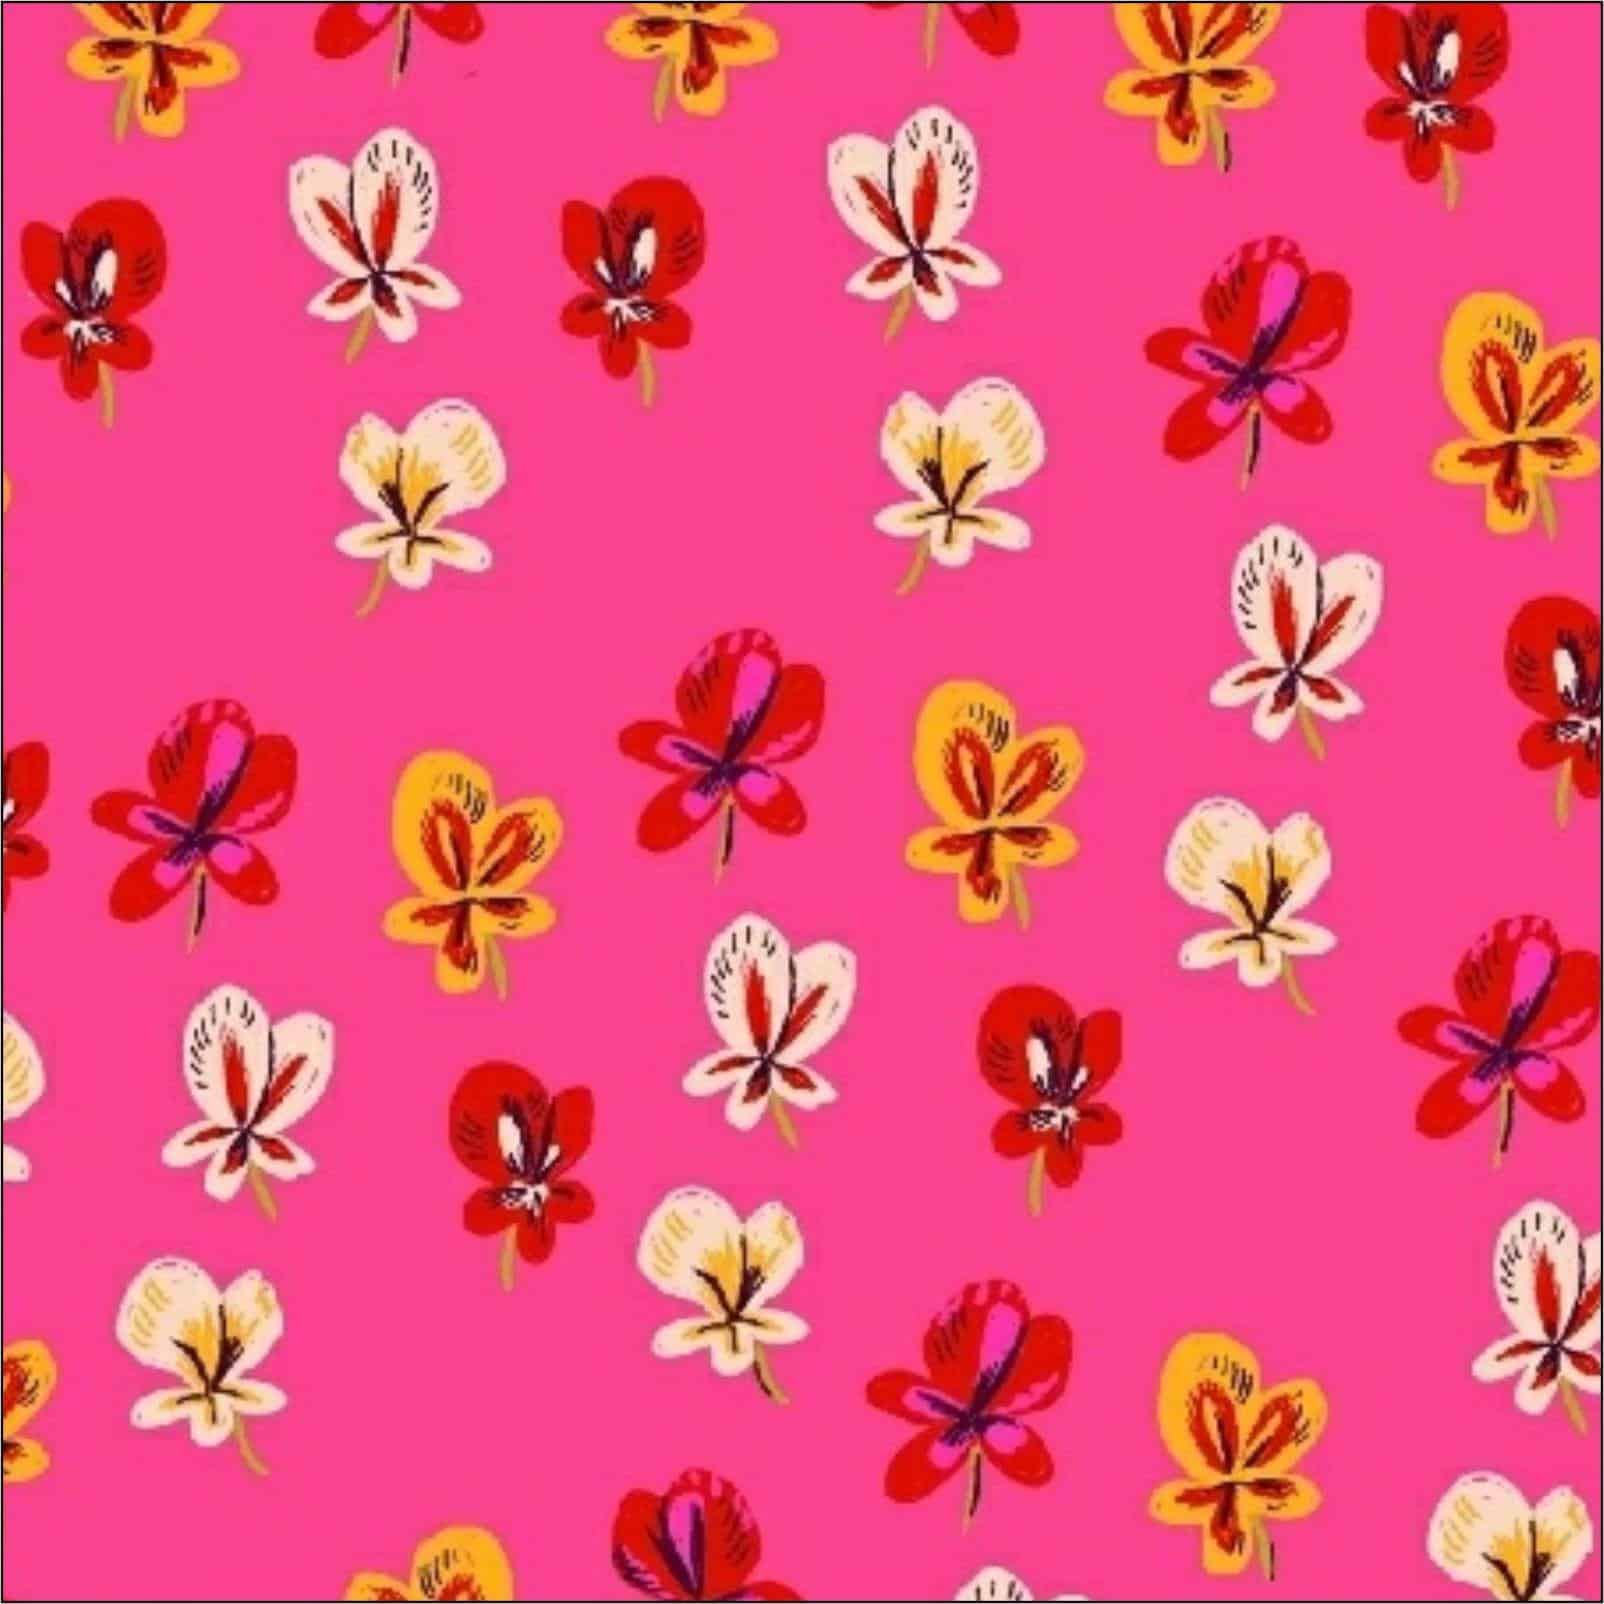 Dressmaking Fabric | Windham Sleeping Porch Pink Fabric | More Sewing